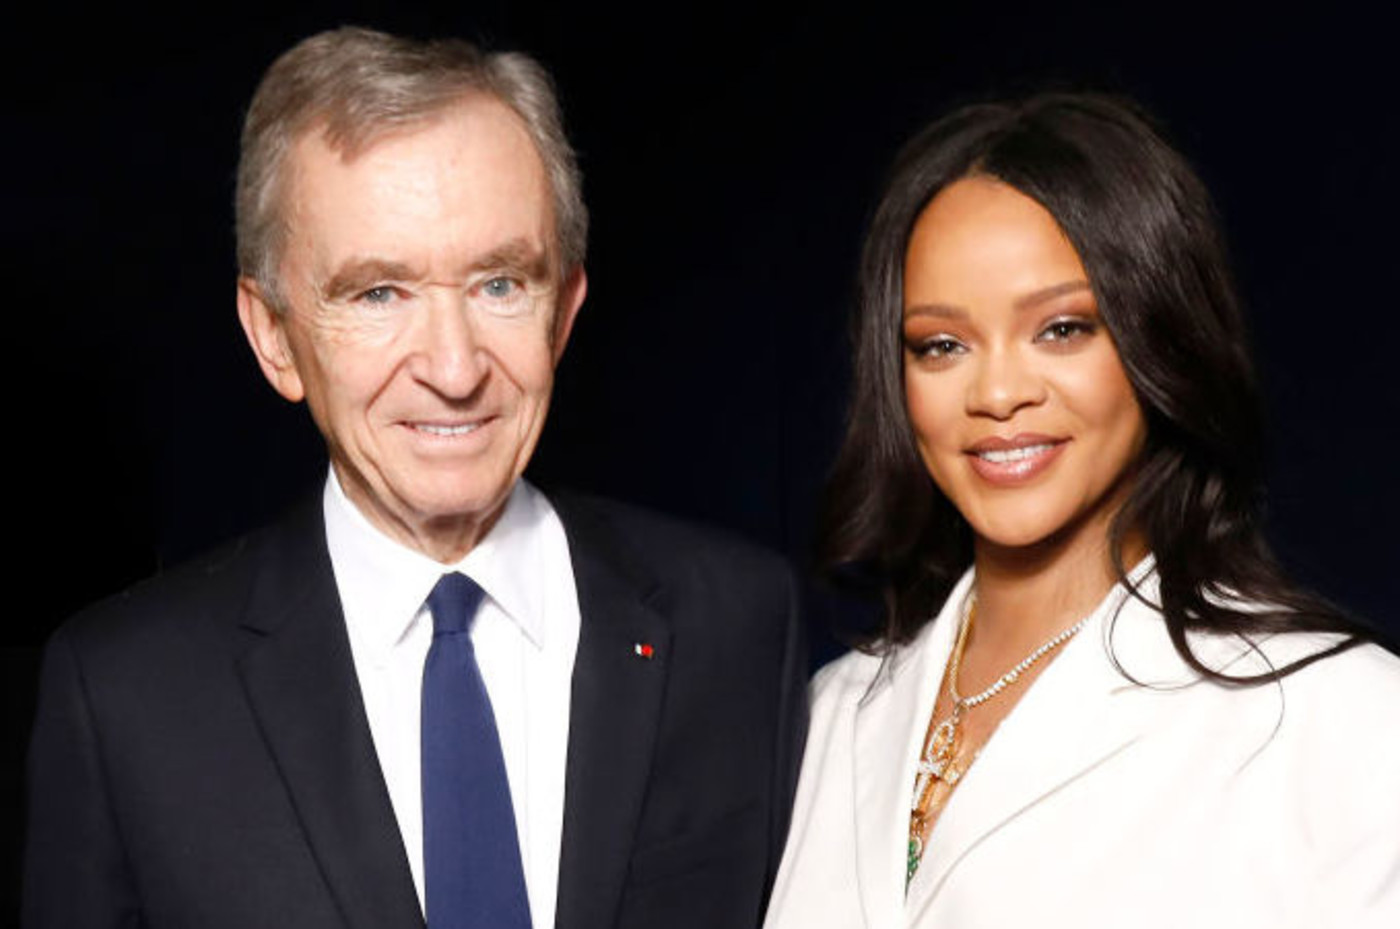 The iconic fashion brand Fenty by Rihanna is shutting down and focusing on lingerie. Find out what inspired LVMH to shut down the massive fashion house.